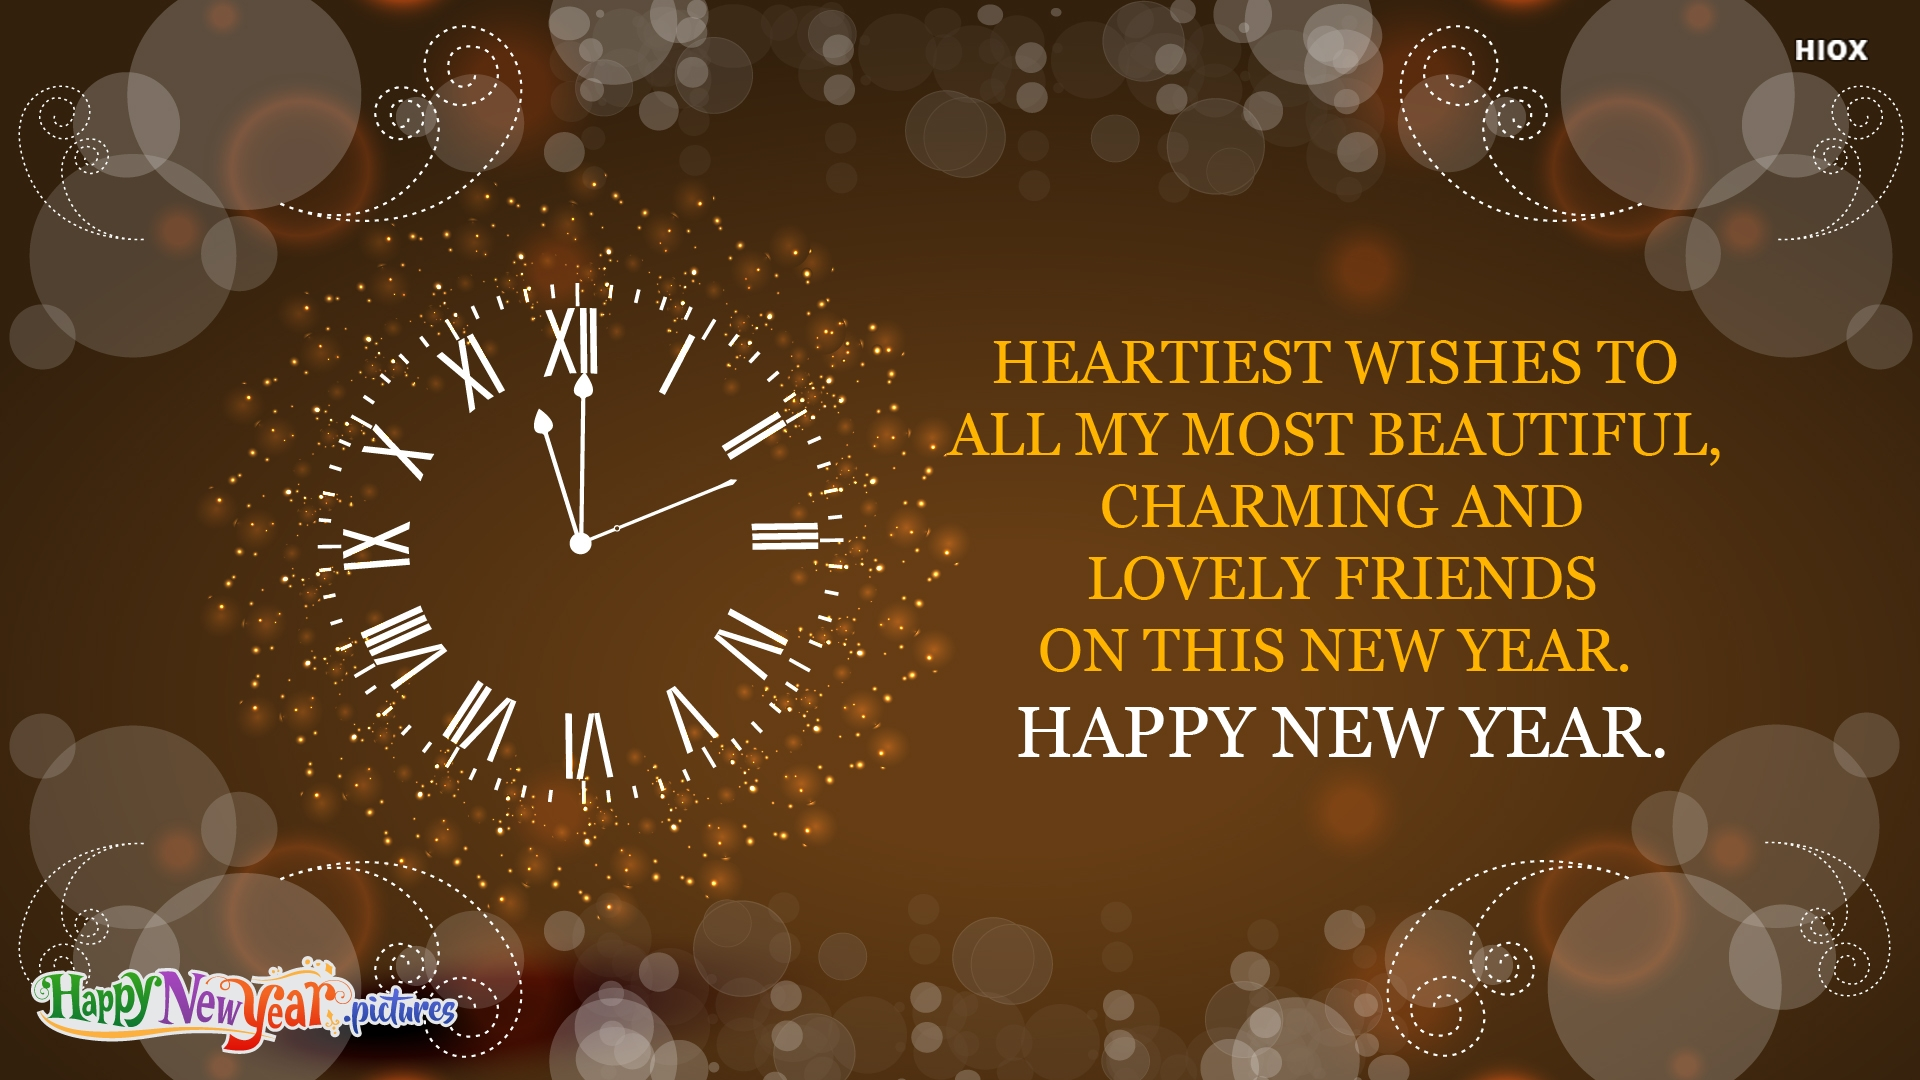 Heartiest Wishes To All My Most Beautiful, Charming and Lovely Friends On This New Year.